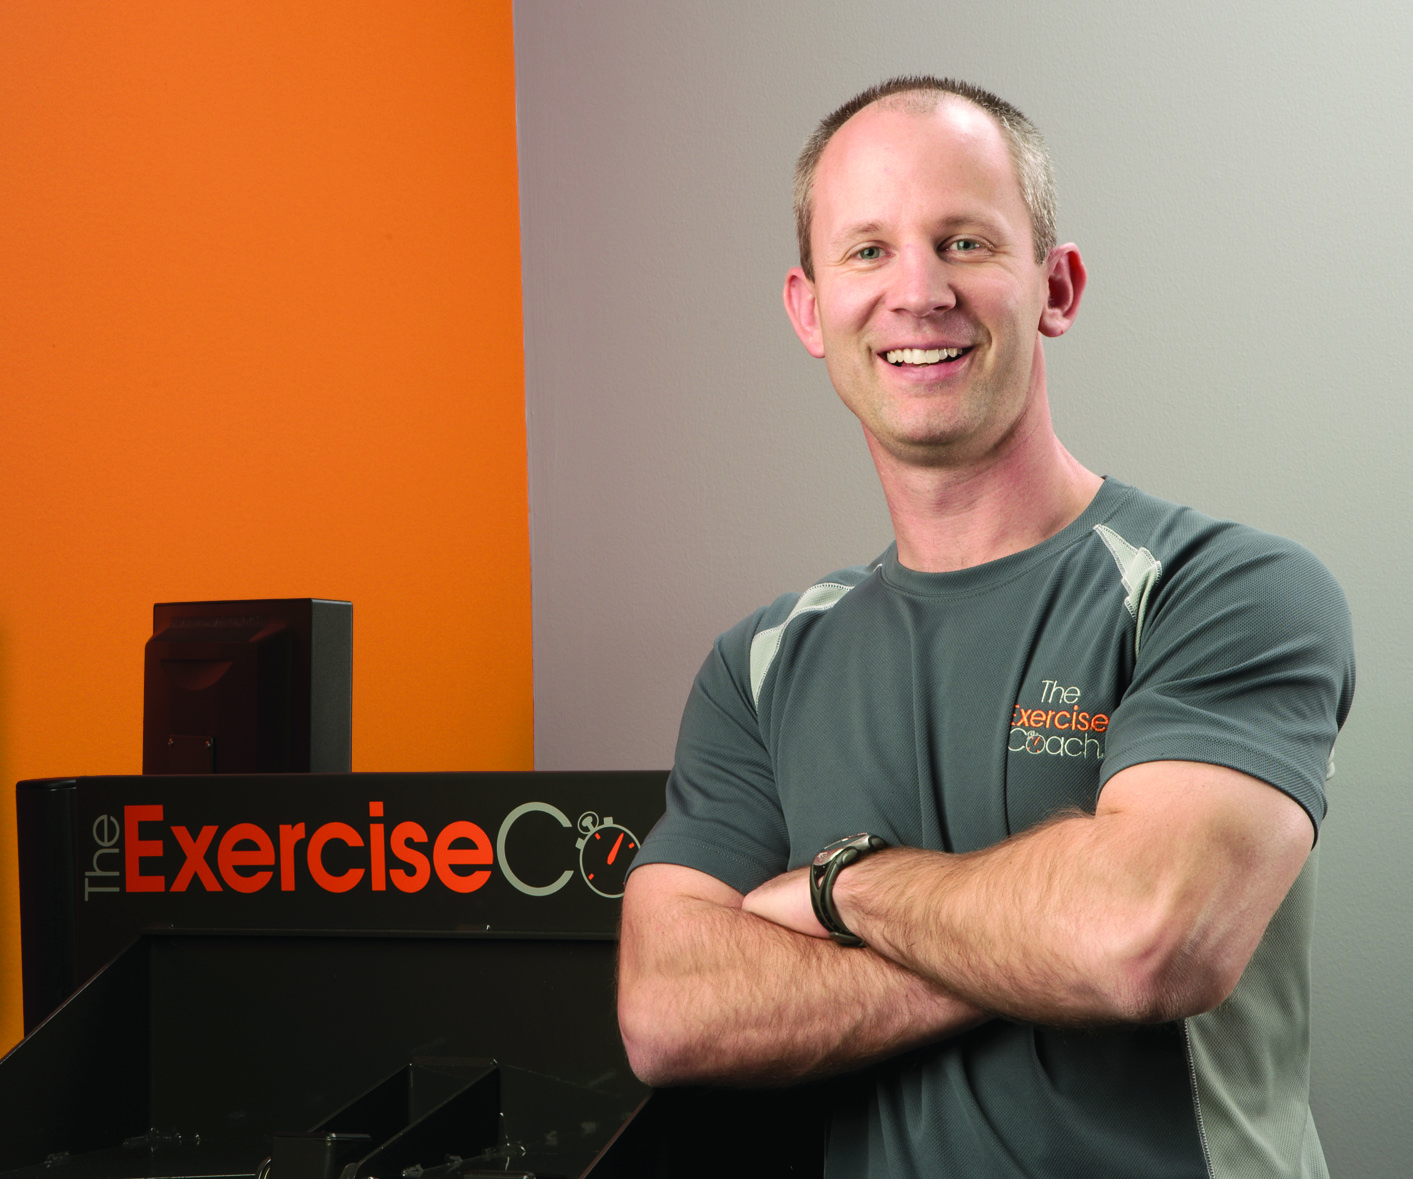 Brian Cygan is the founder of Lake Zurich, Ill.-based fitness chain The Exercise Coach.